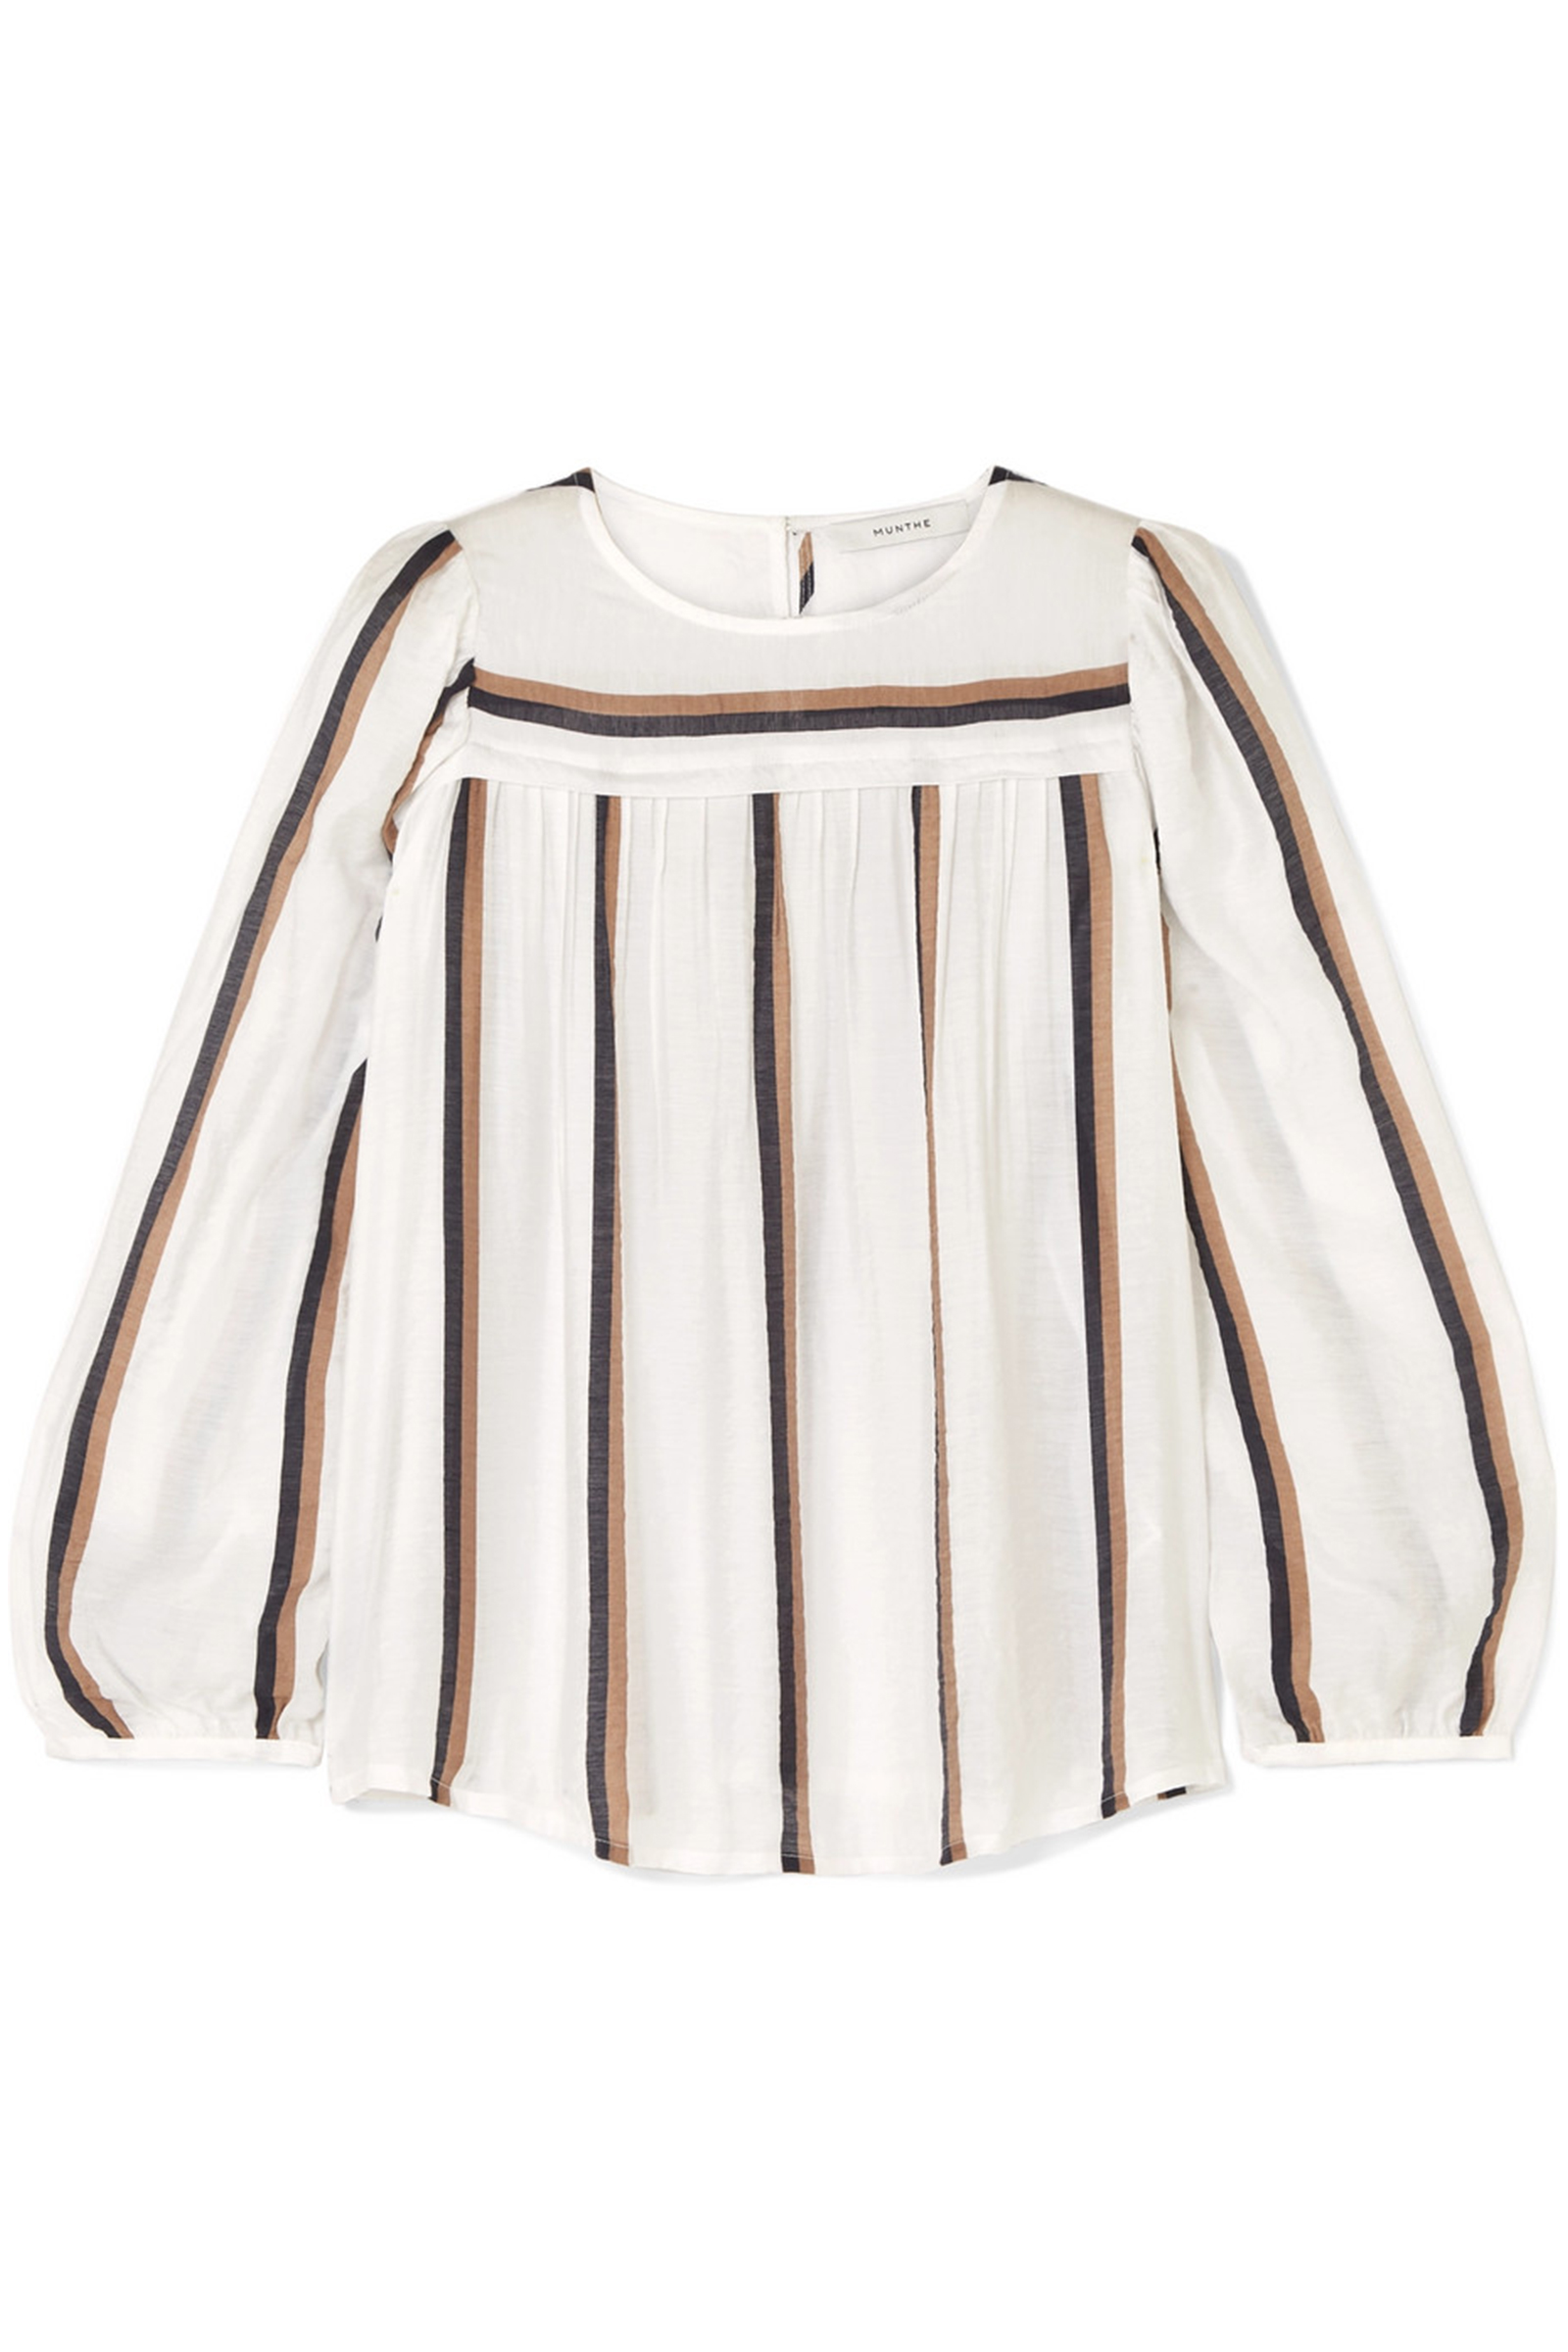 MUNTHE-Dustry-Striped-Voile-Top